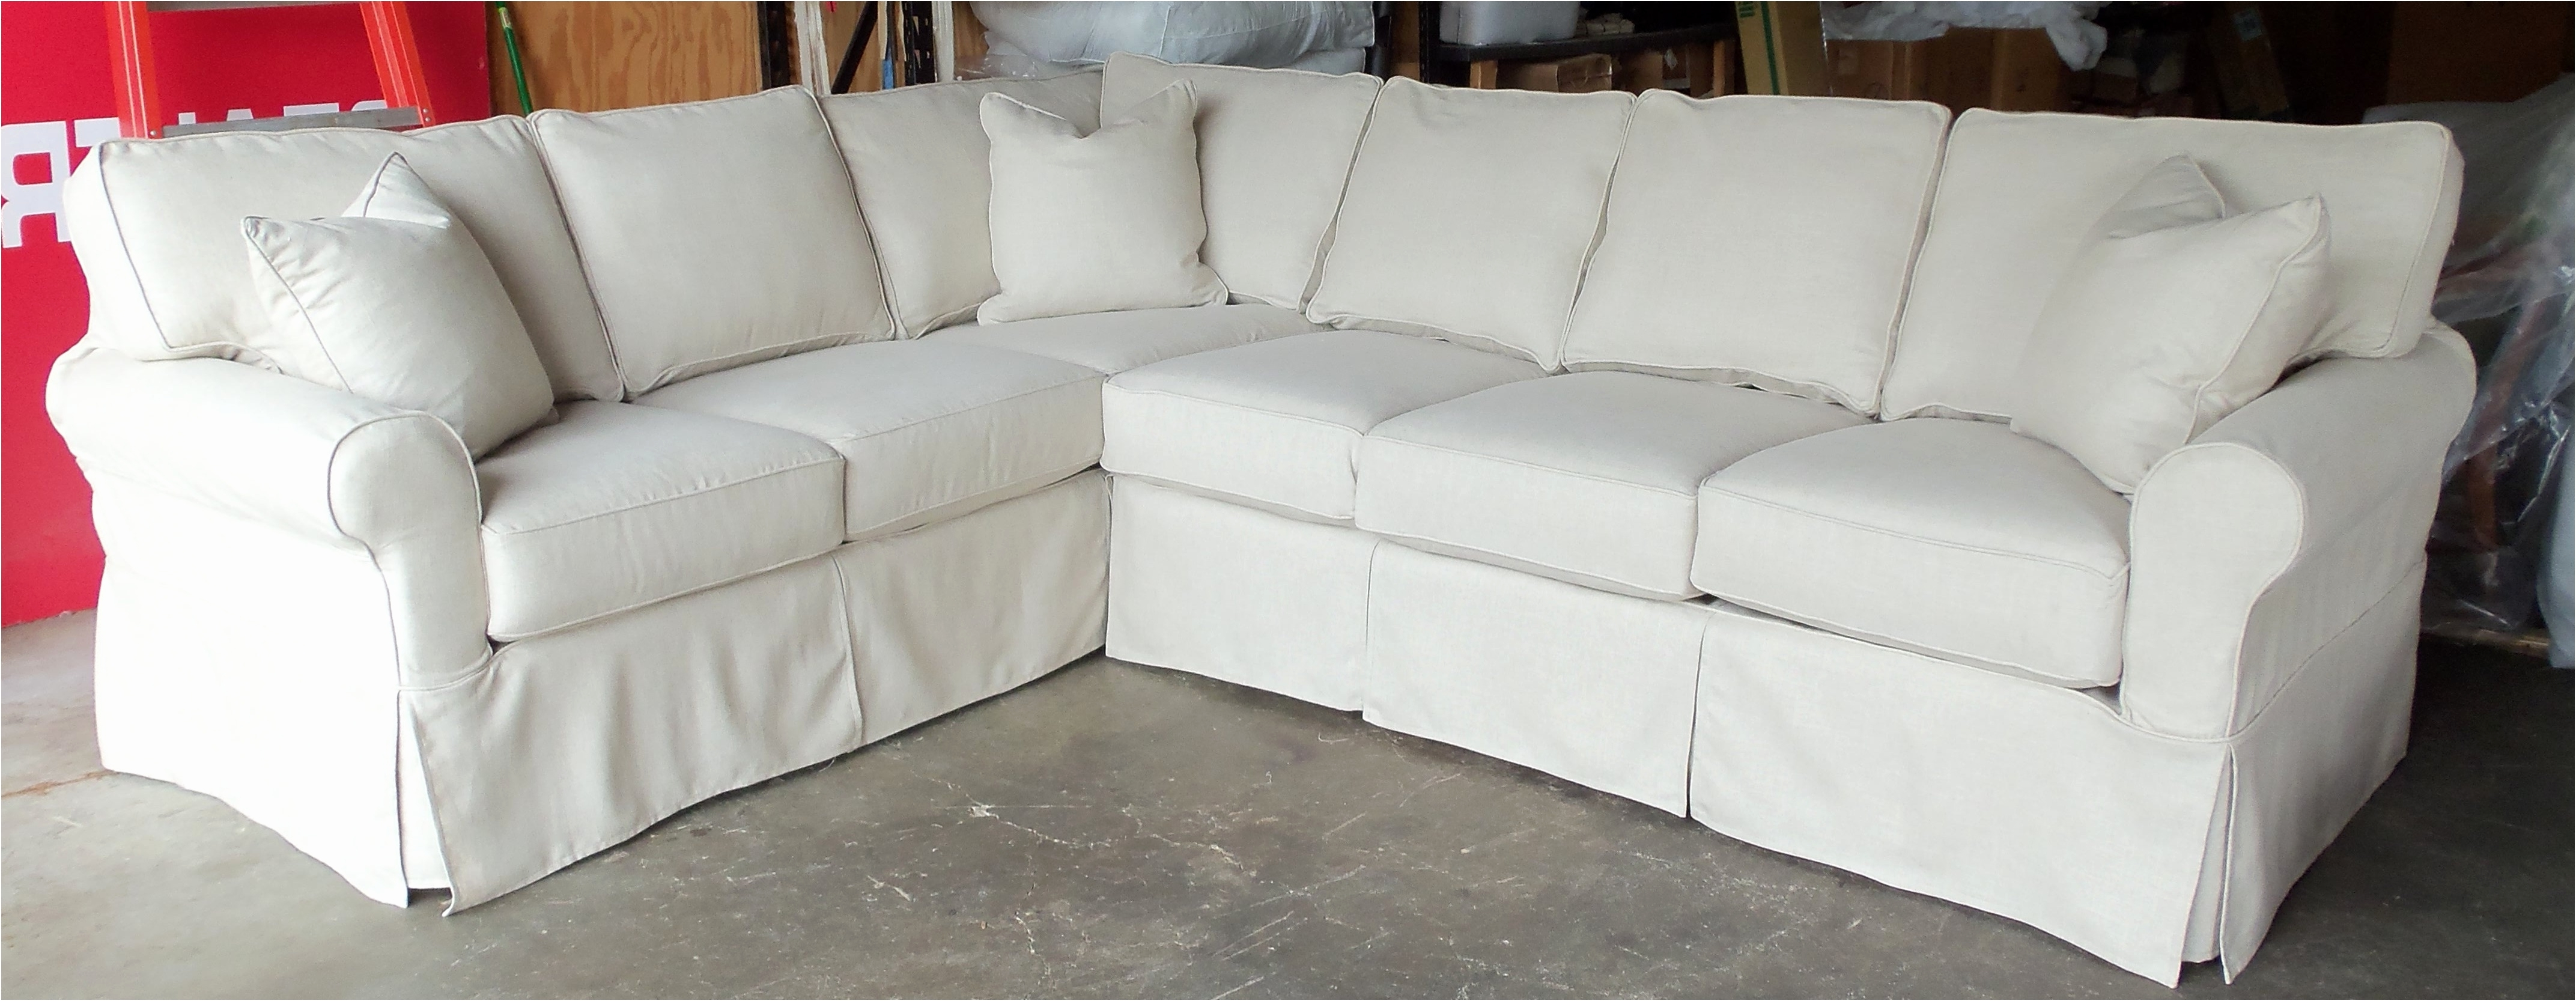 New Sofas At Target Elegant – Intuisiblog With Regard To Best And Newest Target Sectional Sofas (Gallery 7 of 20)